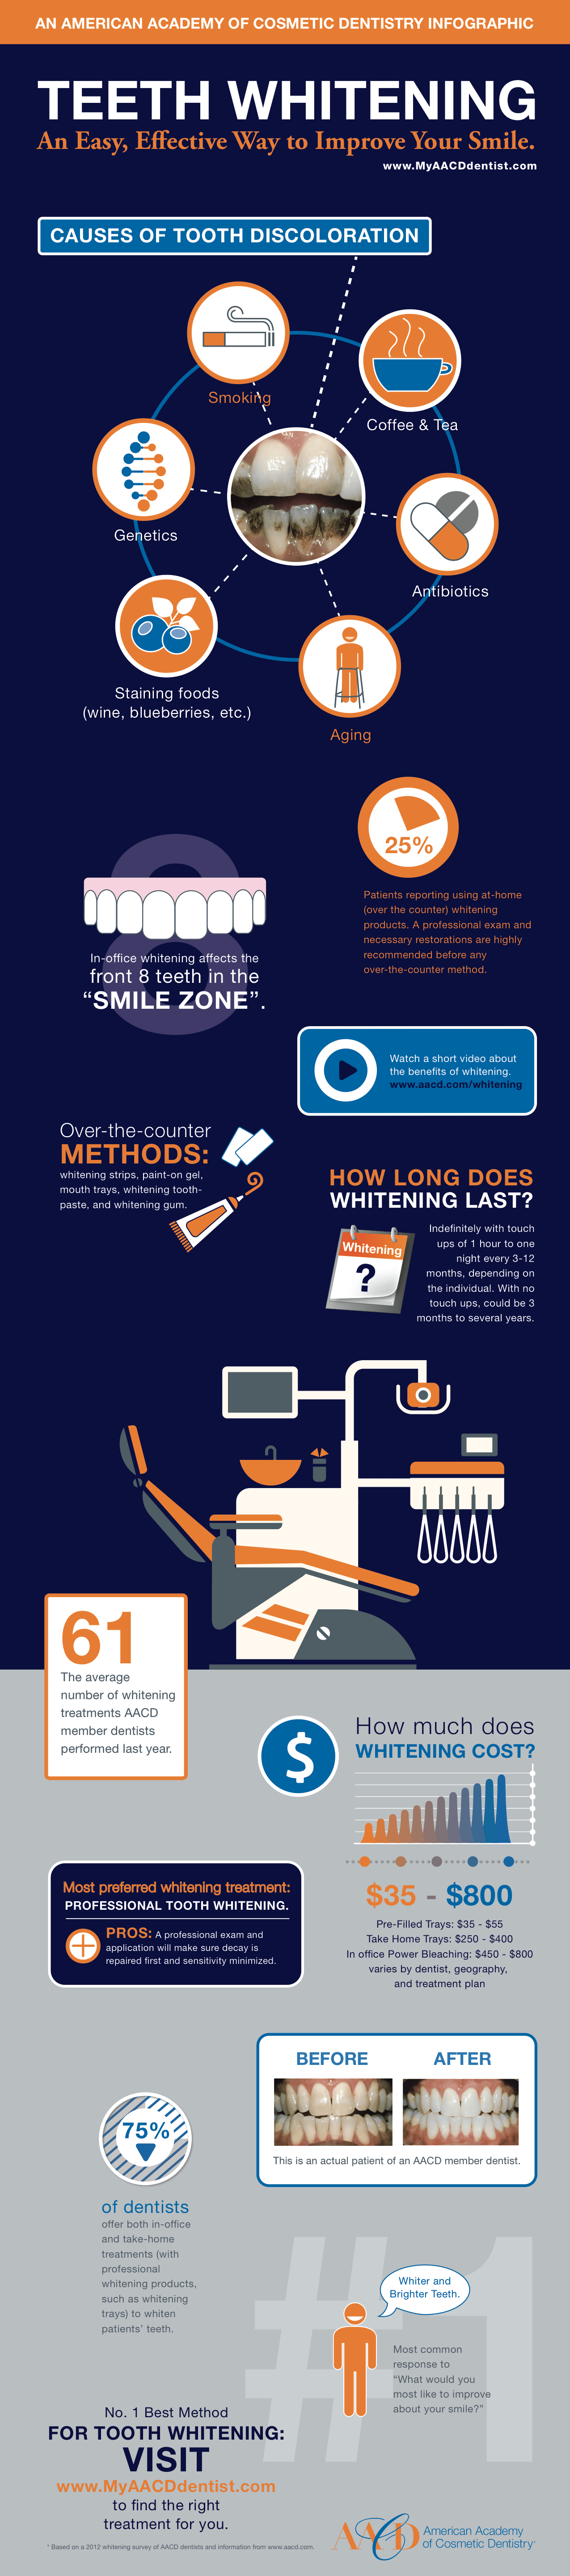 teeth whitening an easy effective way to cosmetic dentistry infographic